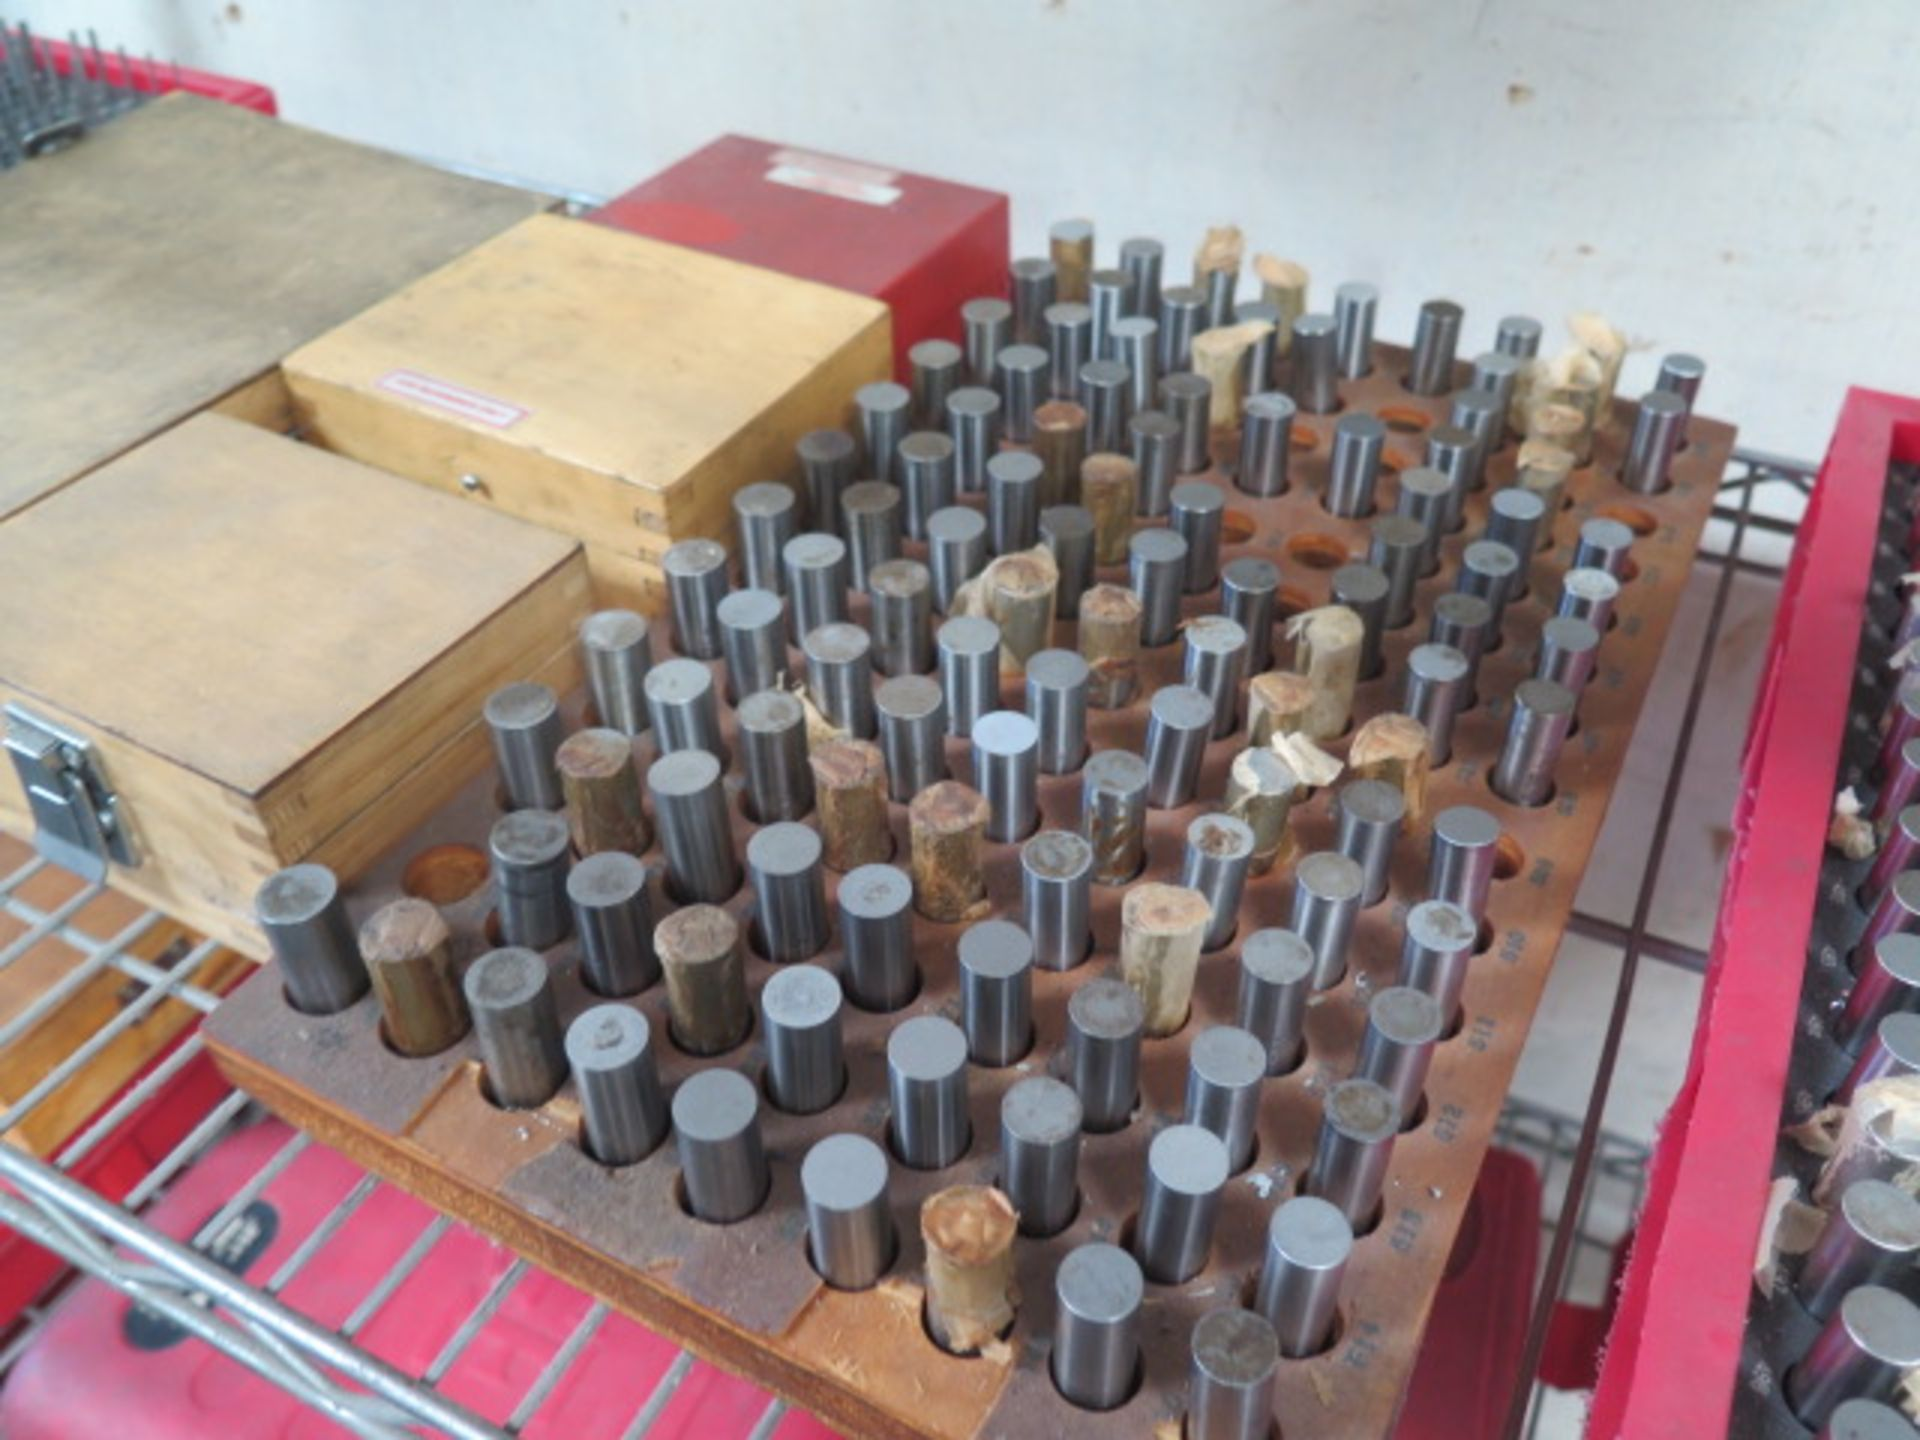 Pin Gage Sets (SOLD AS-IS - NO WARRANTY) - Image 3 of 12